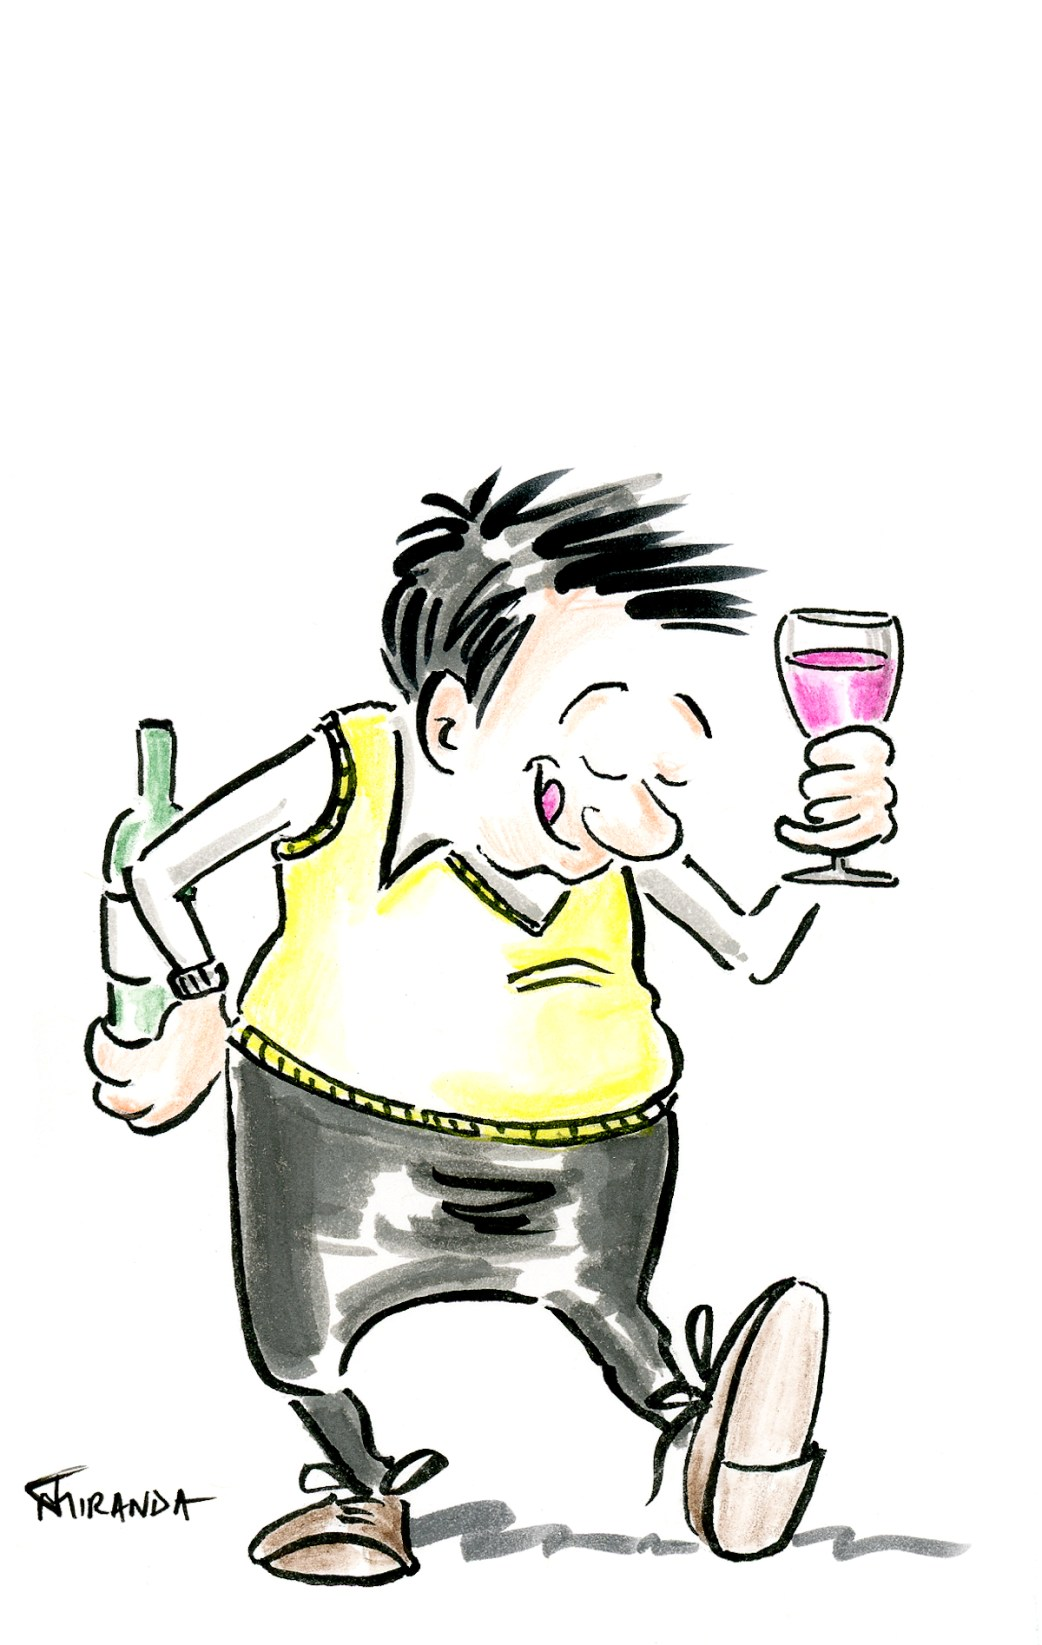 Character Illustrations - Wine Lover Cartoon by Joana Miranda